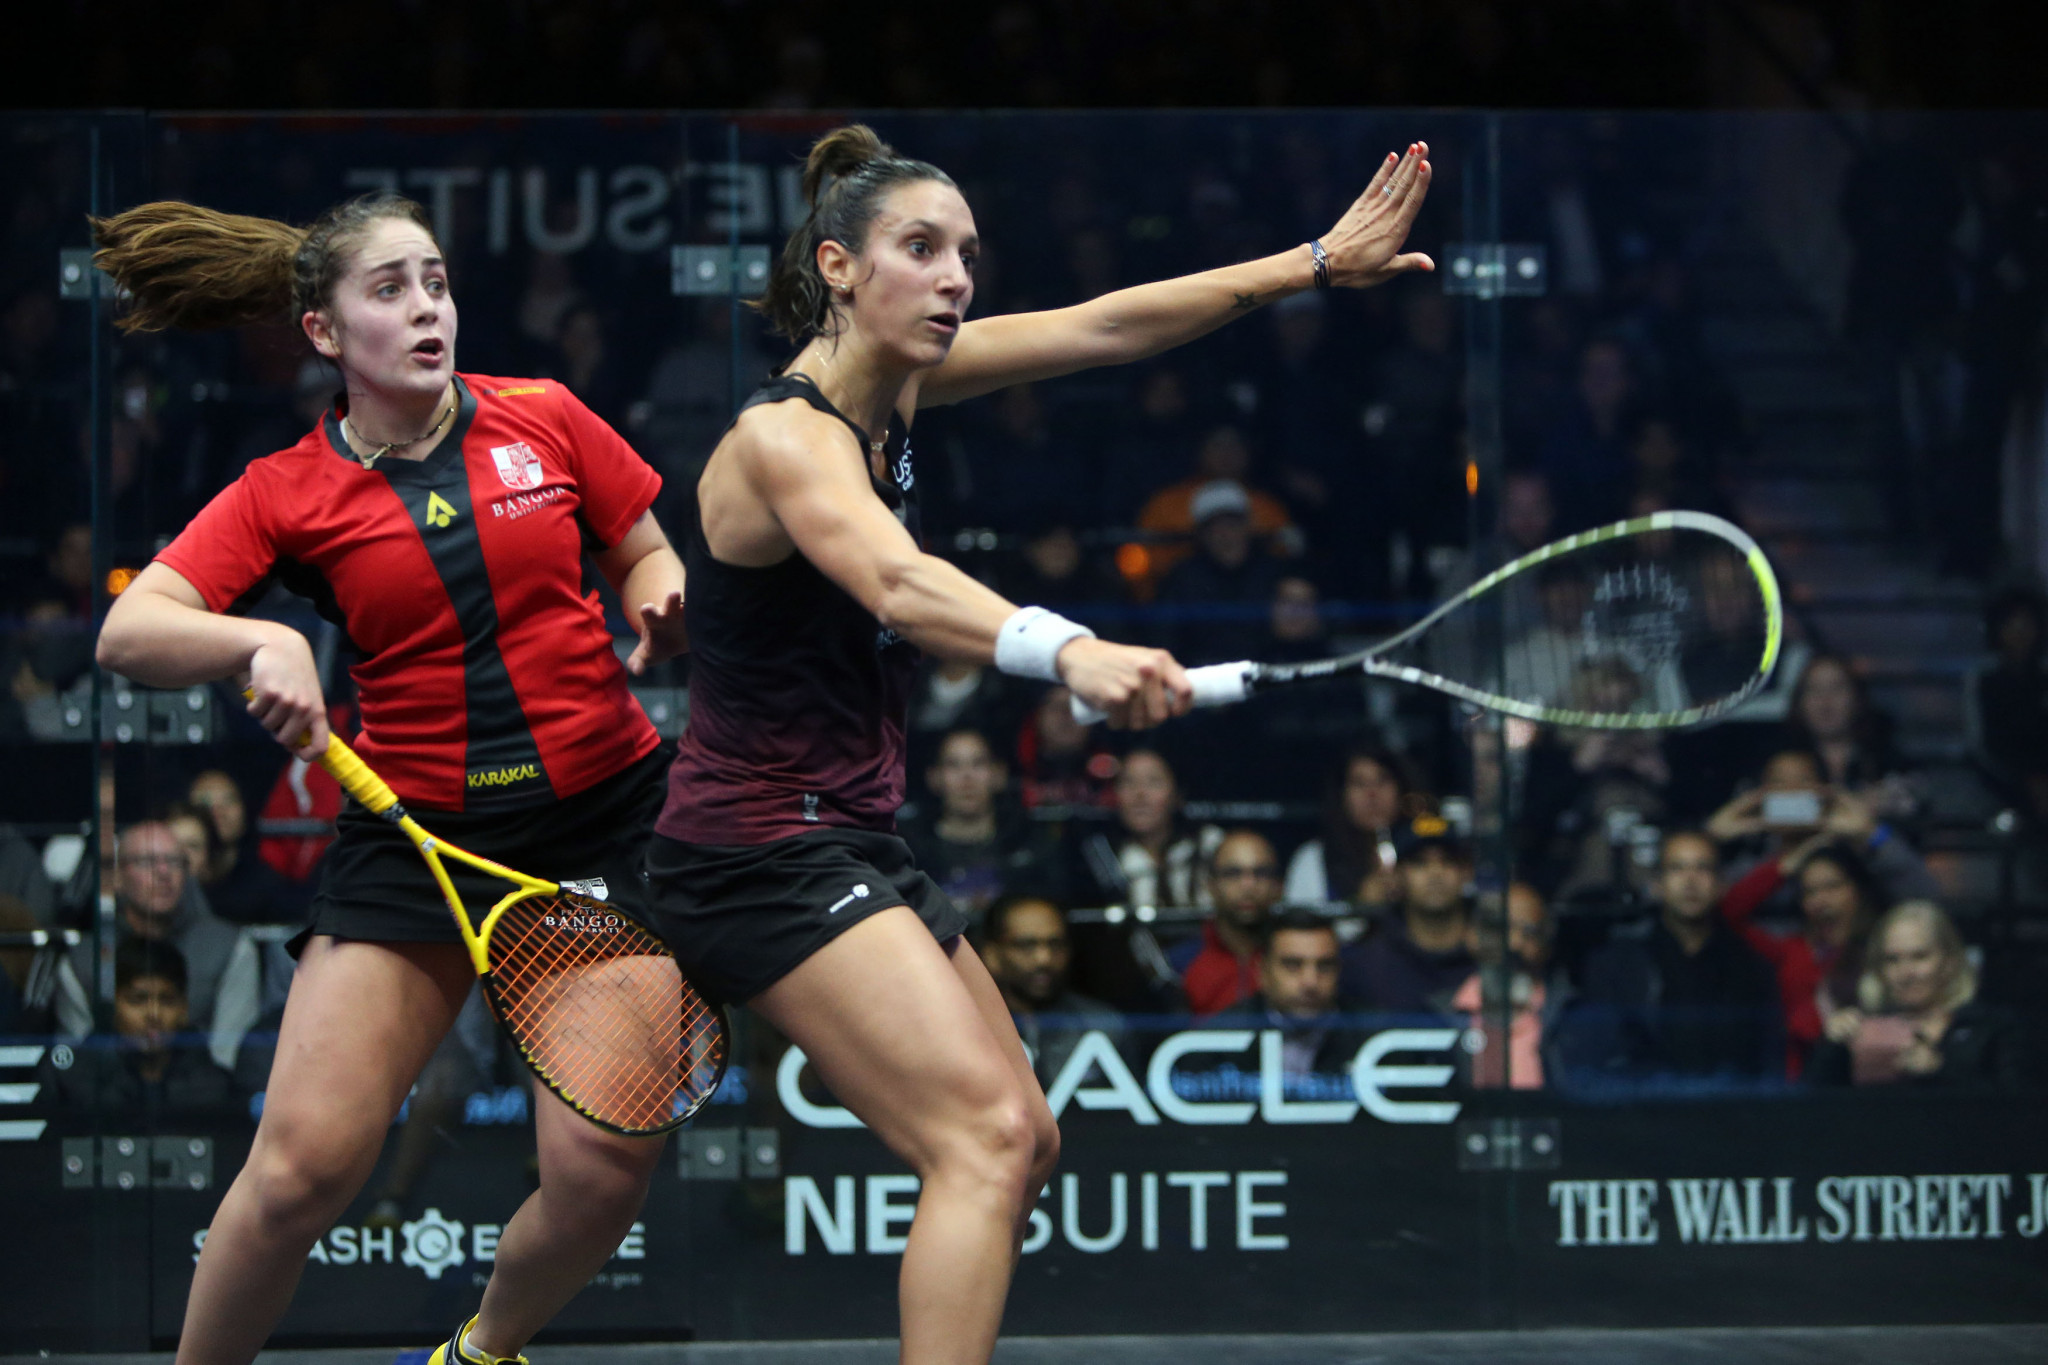 In the women's draw, Camille Serme got the better of world number nine Tesni Evans to reach the last four ©PSA